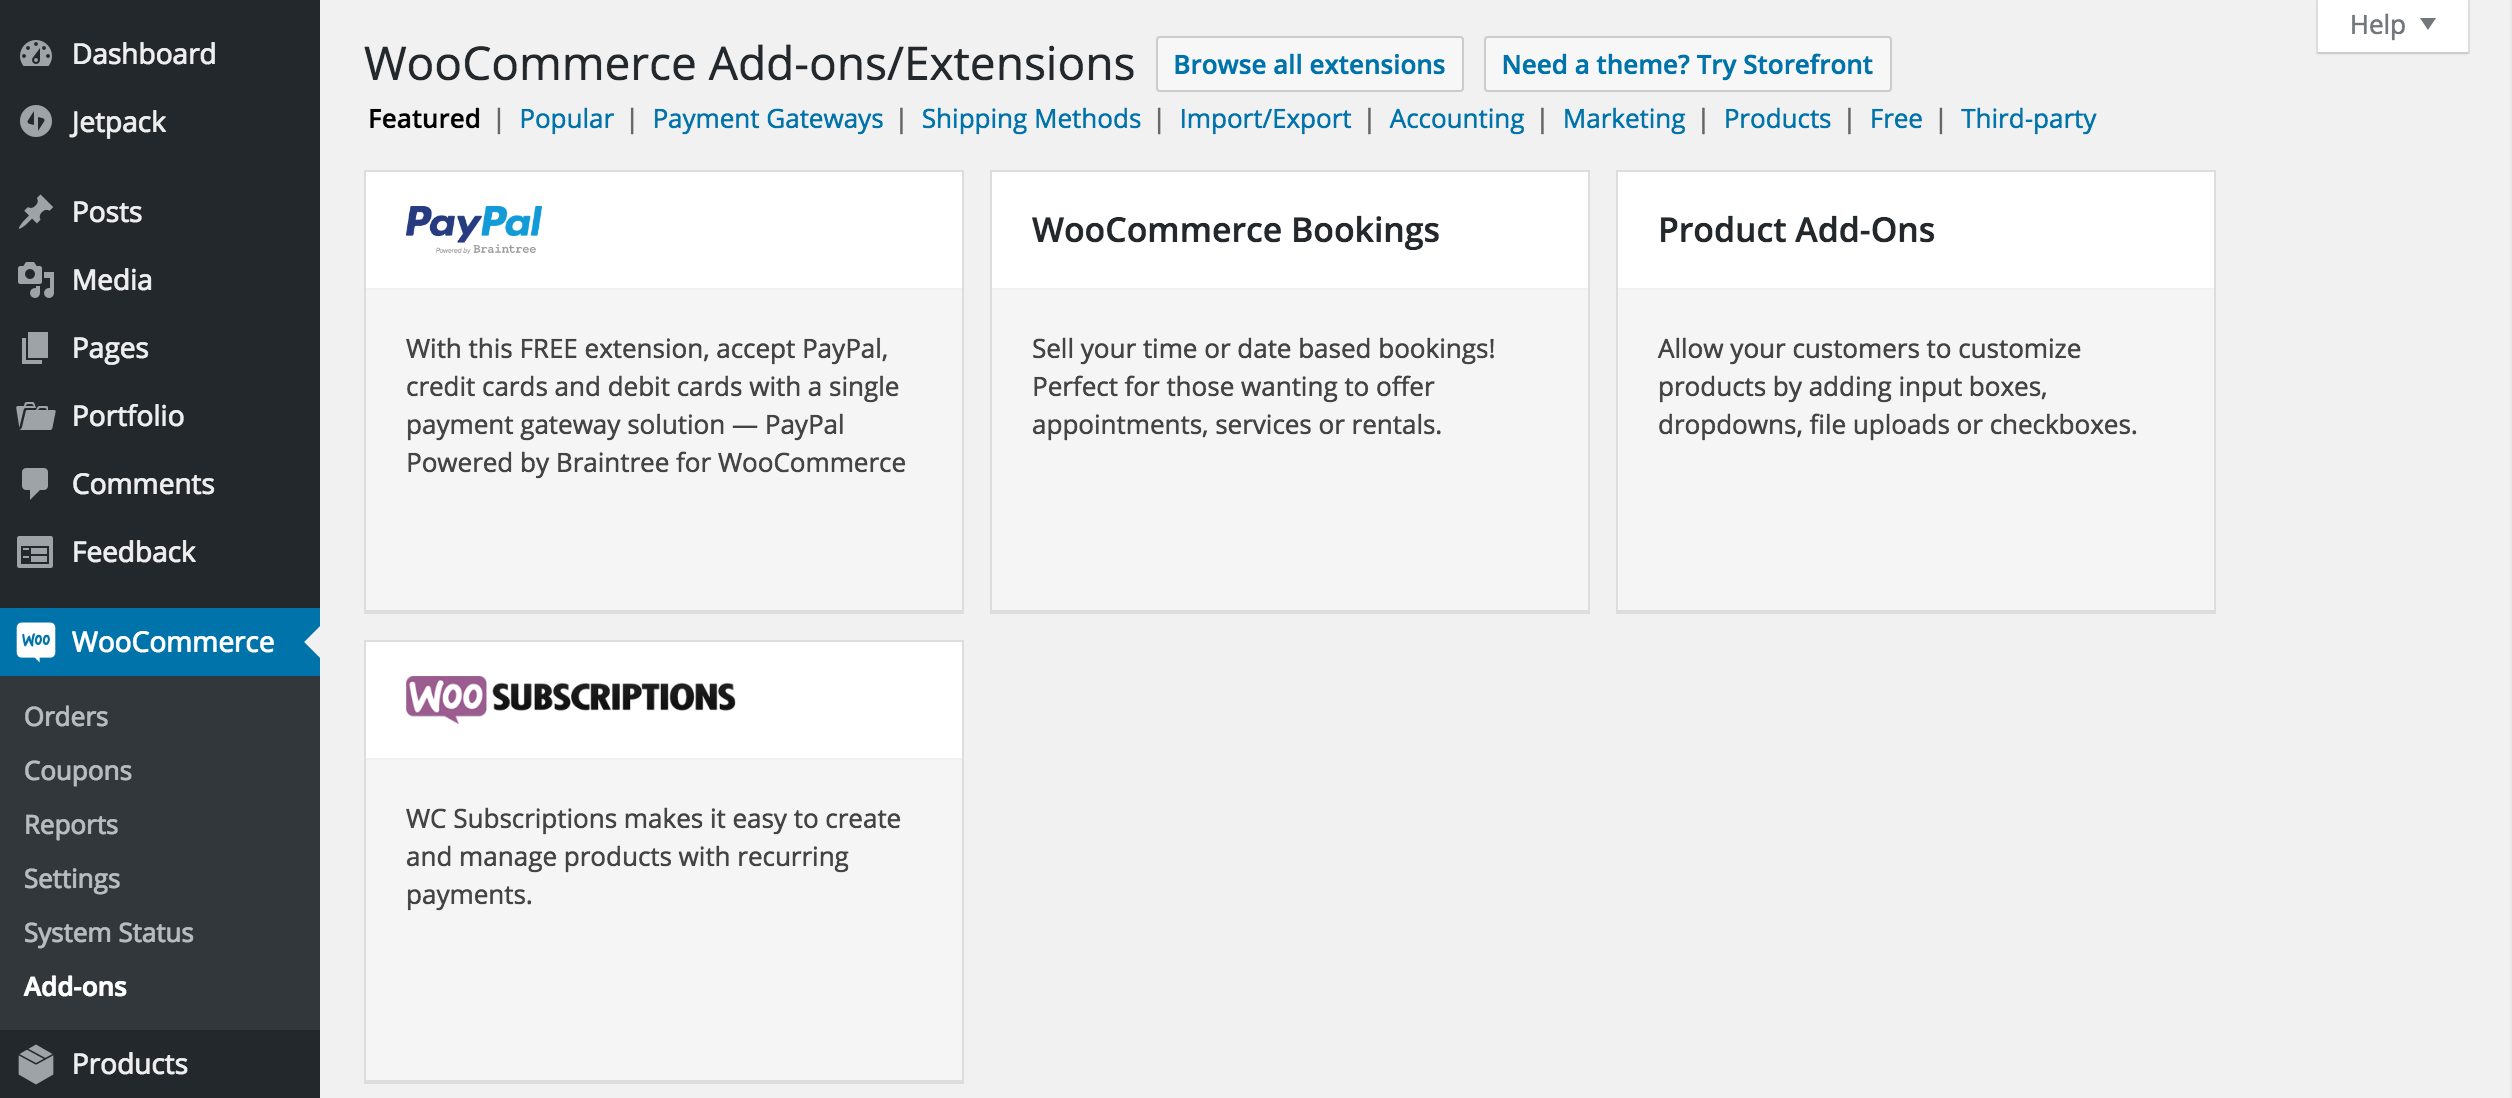 Add these payment gateways and others from the WooCommerce Add-Ons screen.